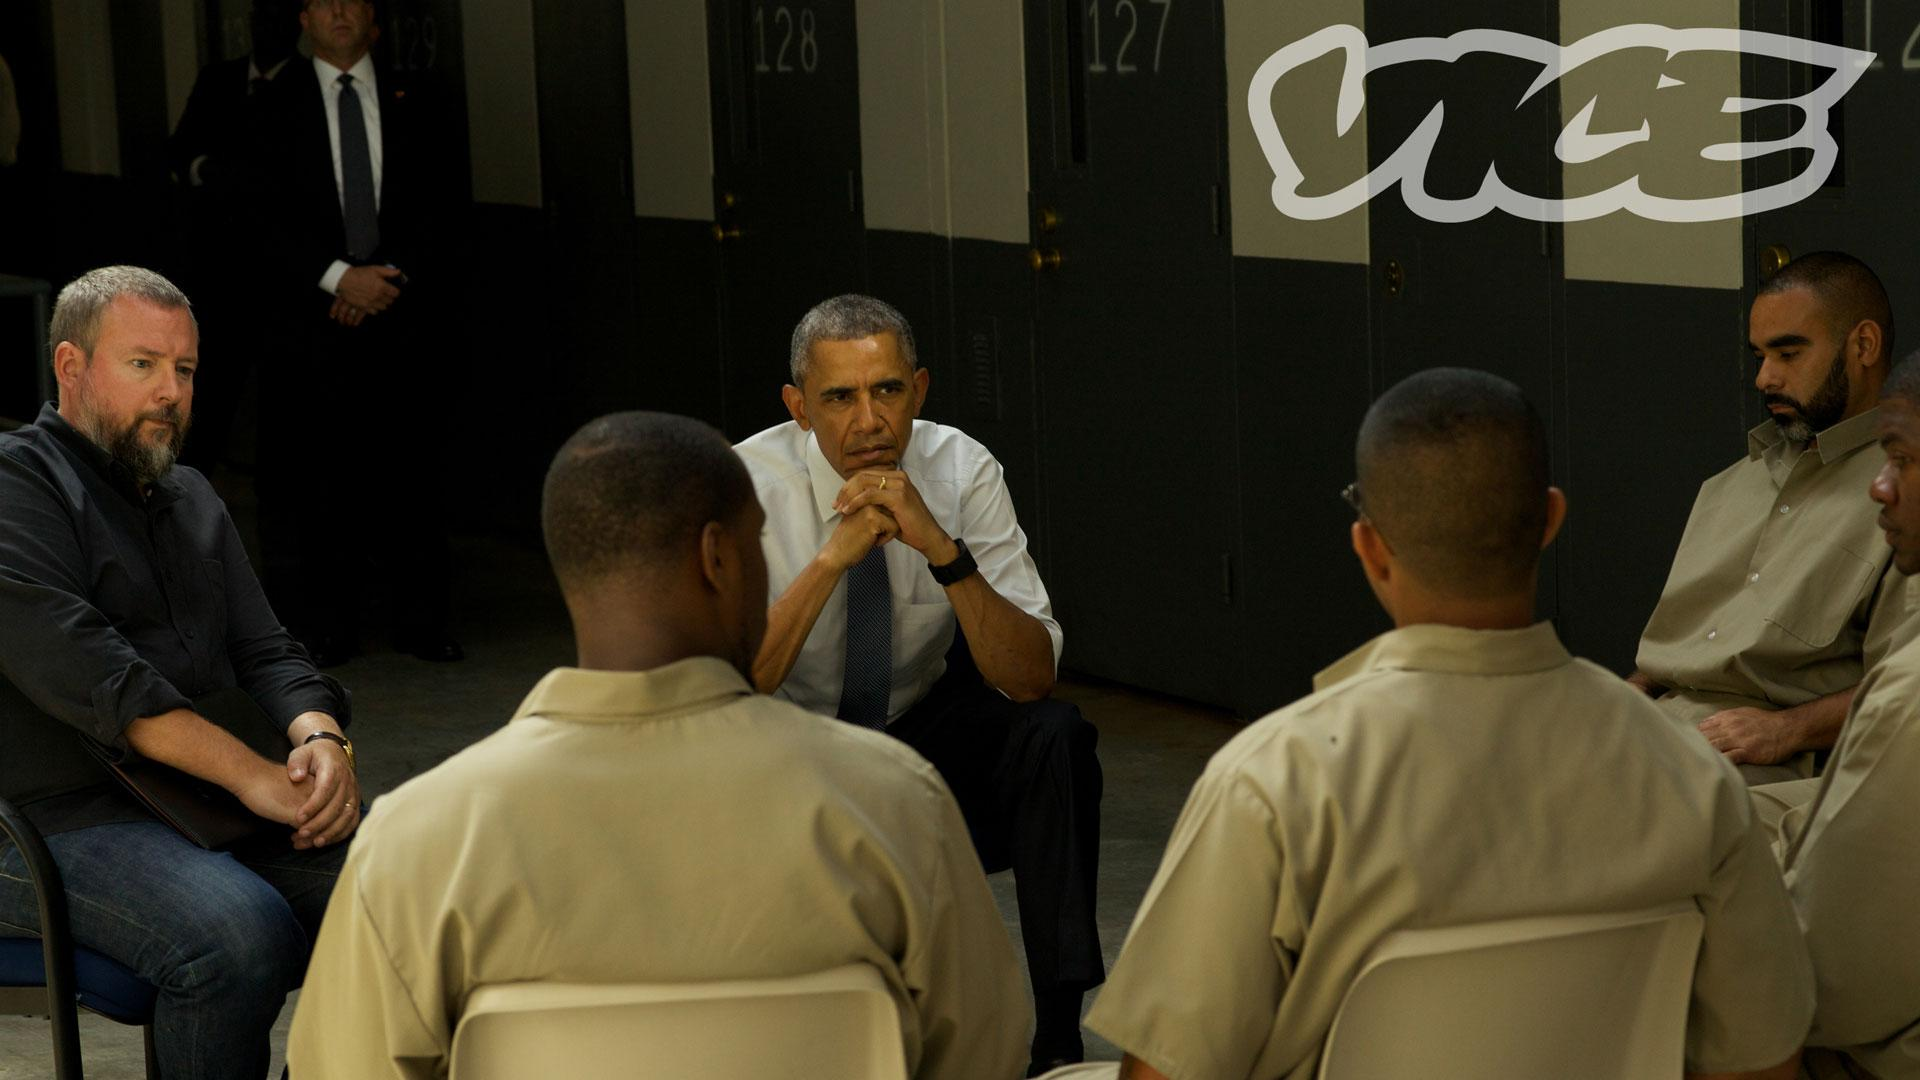 WATCH: First Look at 'Vice' Prison Report With President Obama (Exclusive)